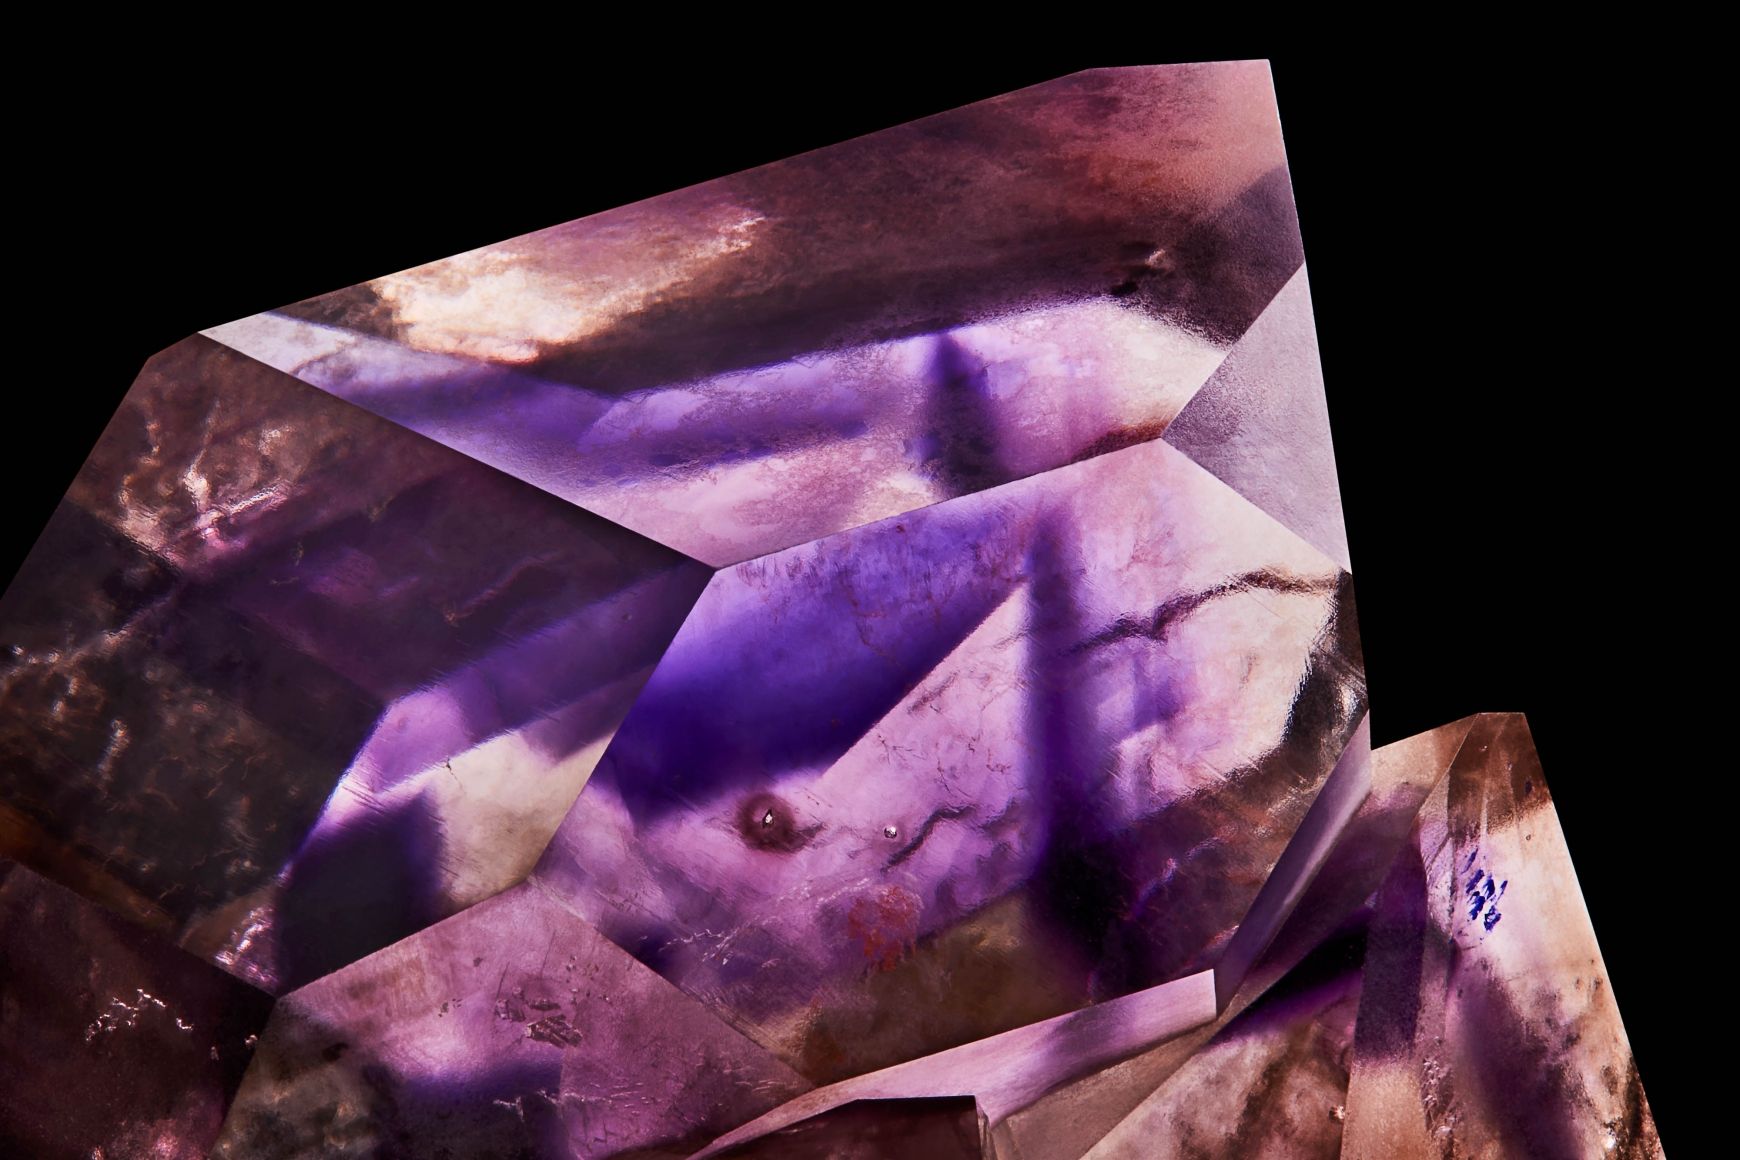 Amethyst on Quartz